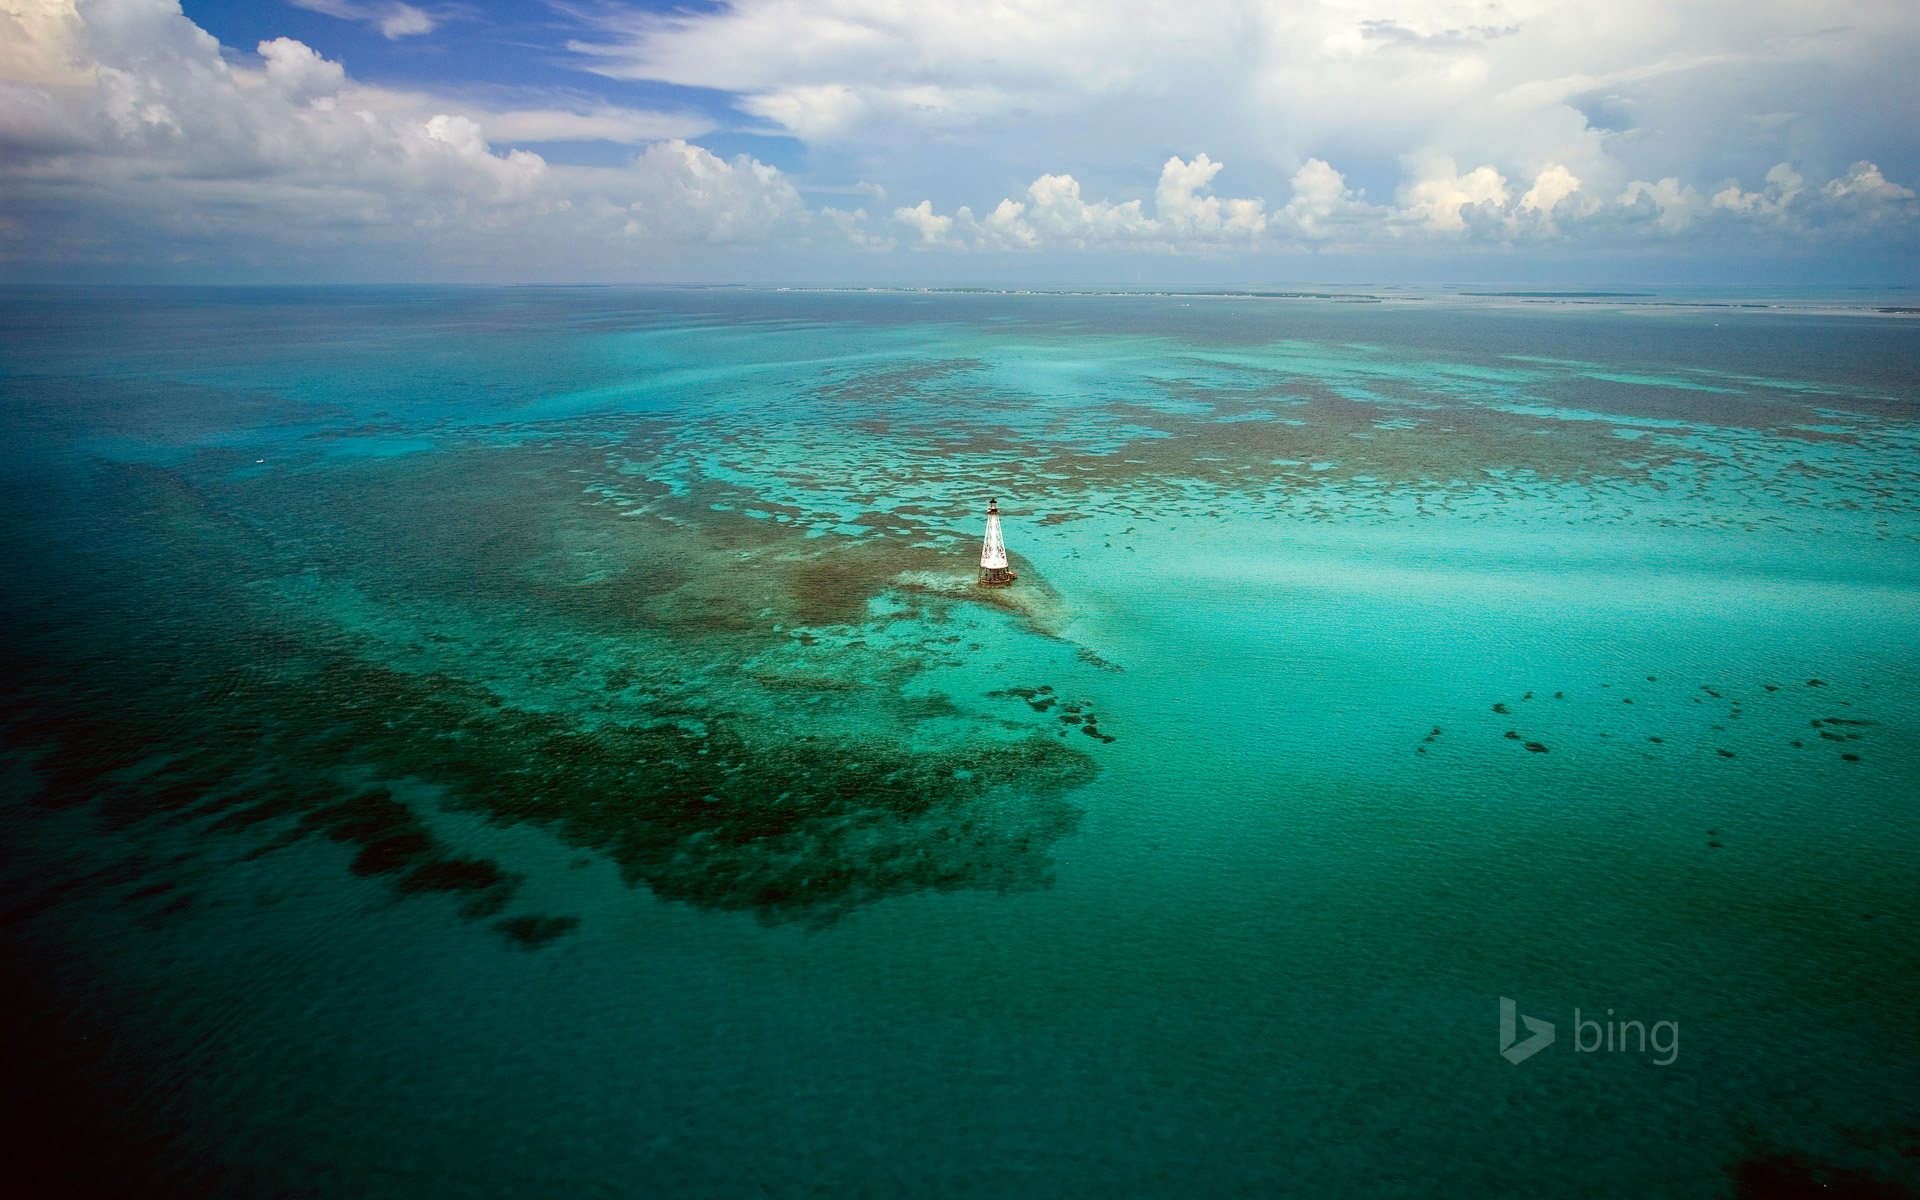 Alligator Reef Light in the Florida Keys